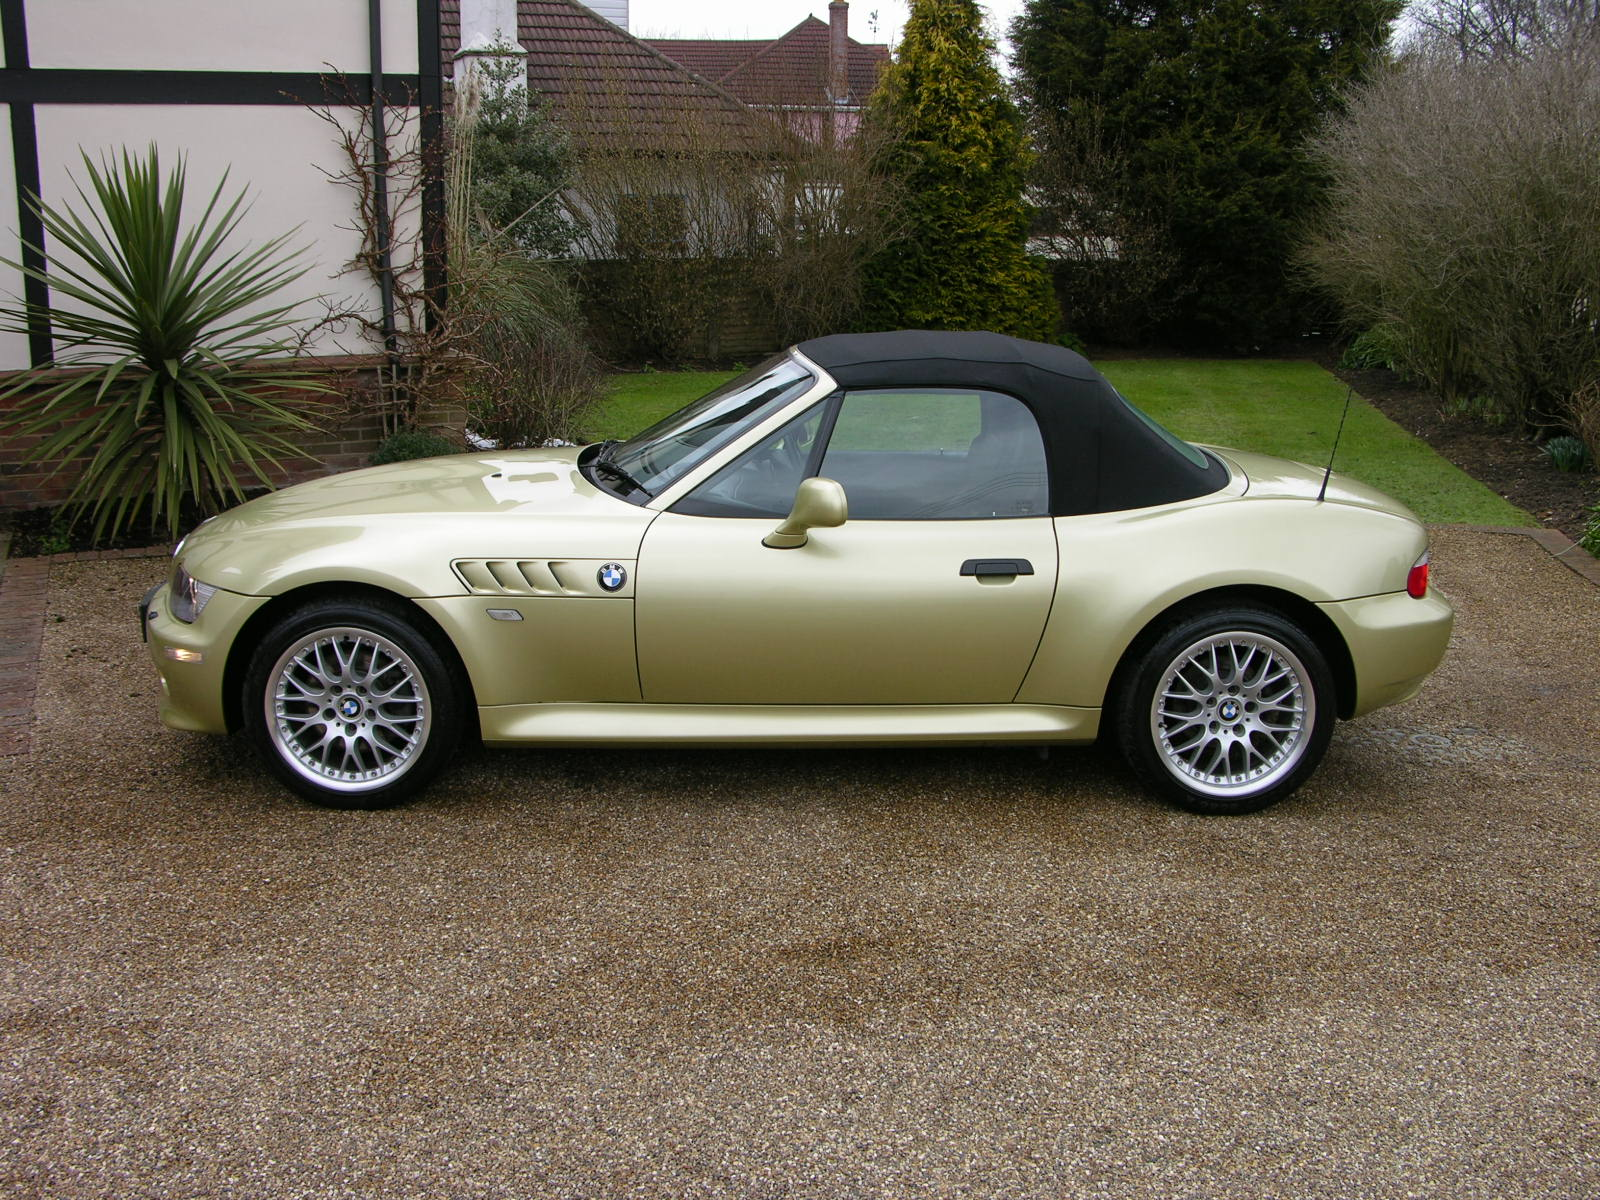 Bmw Z3 Wiki File Bmw Z3 Side Jpg Wikimedia Commons File